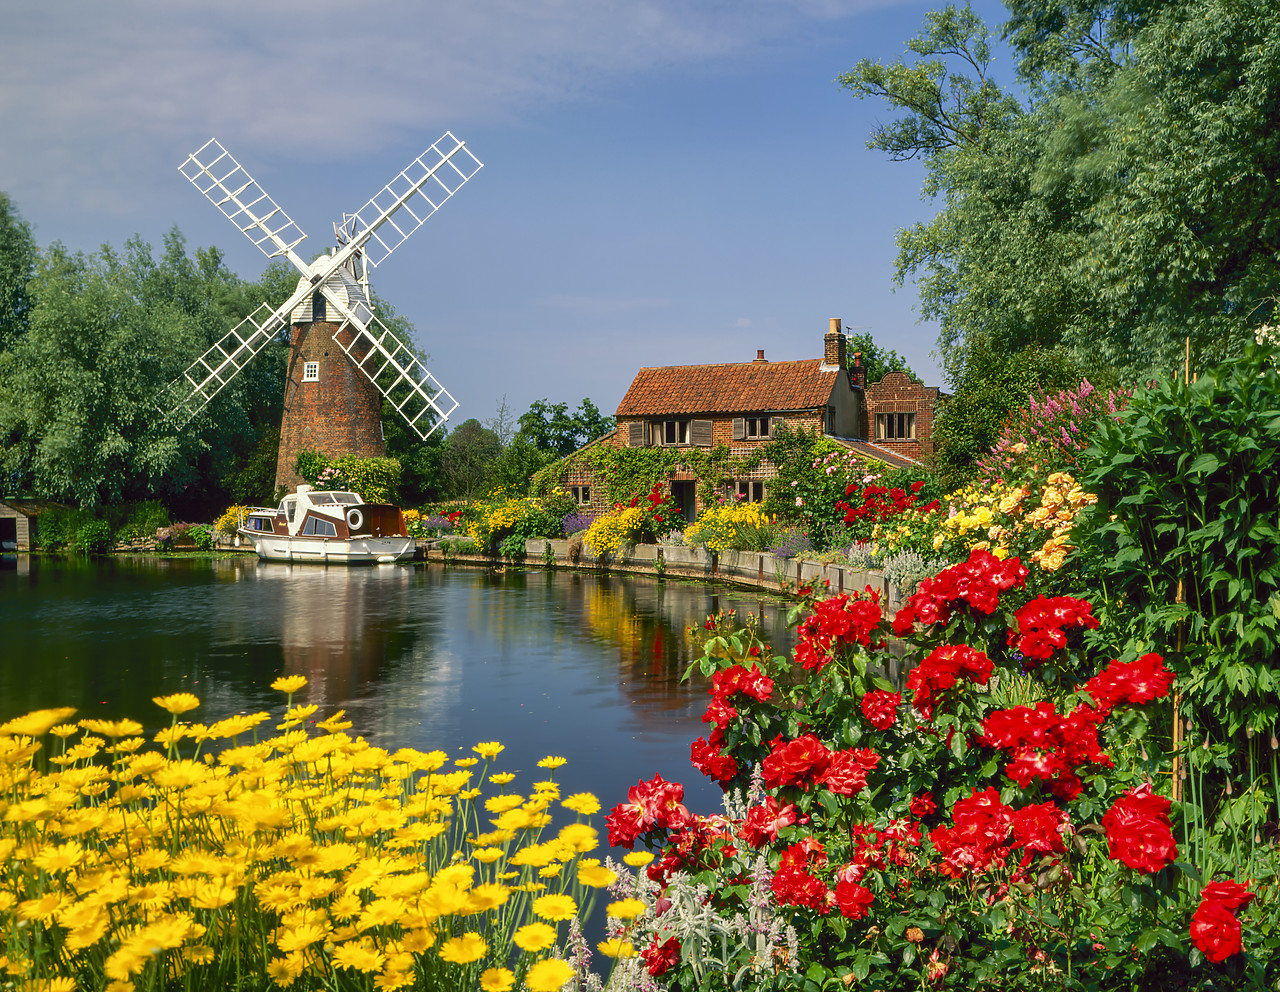 #955594-1 - Hunset Mill on the River Ant, Norfolk, England